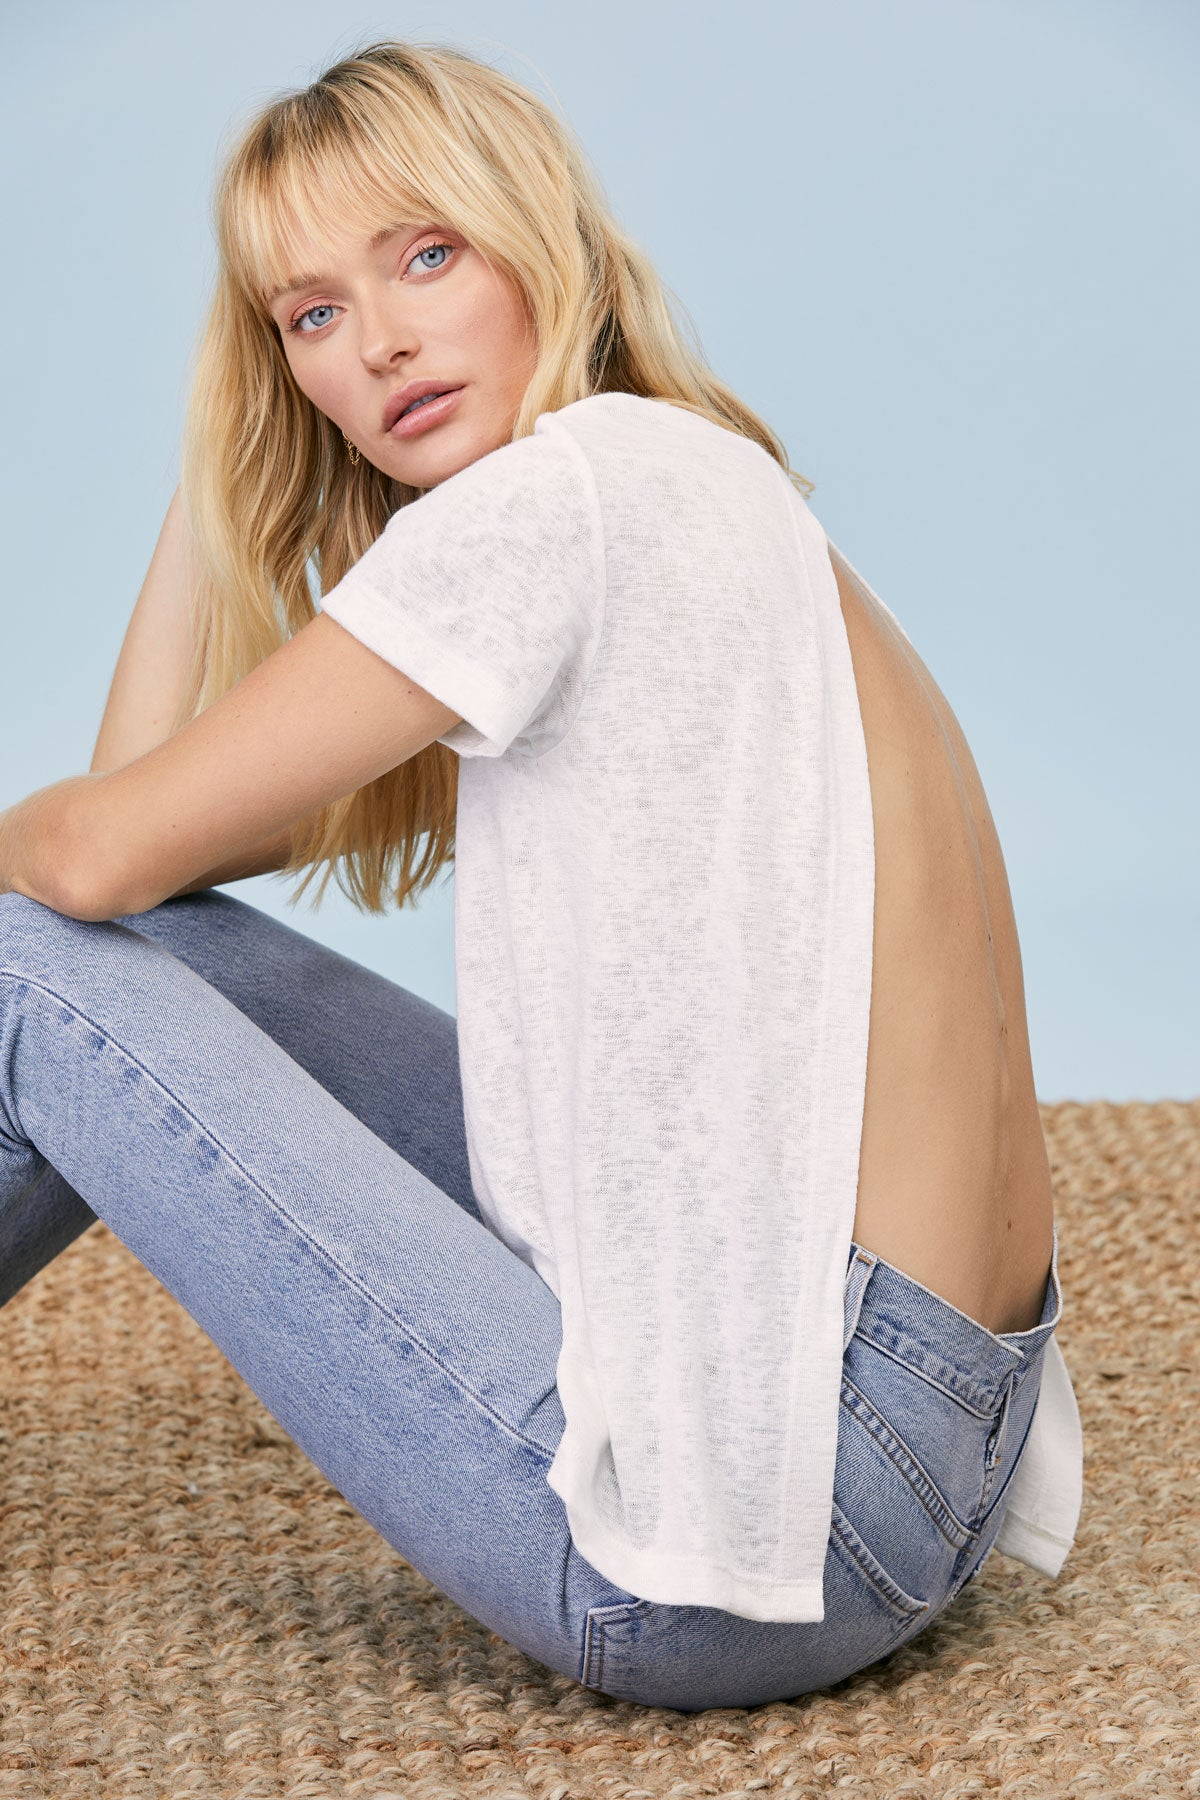 LNA Clothing Mariana Backless Tee in White